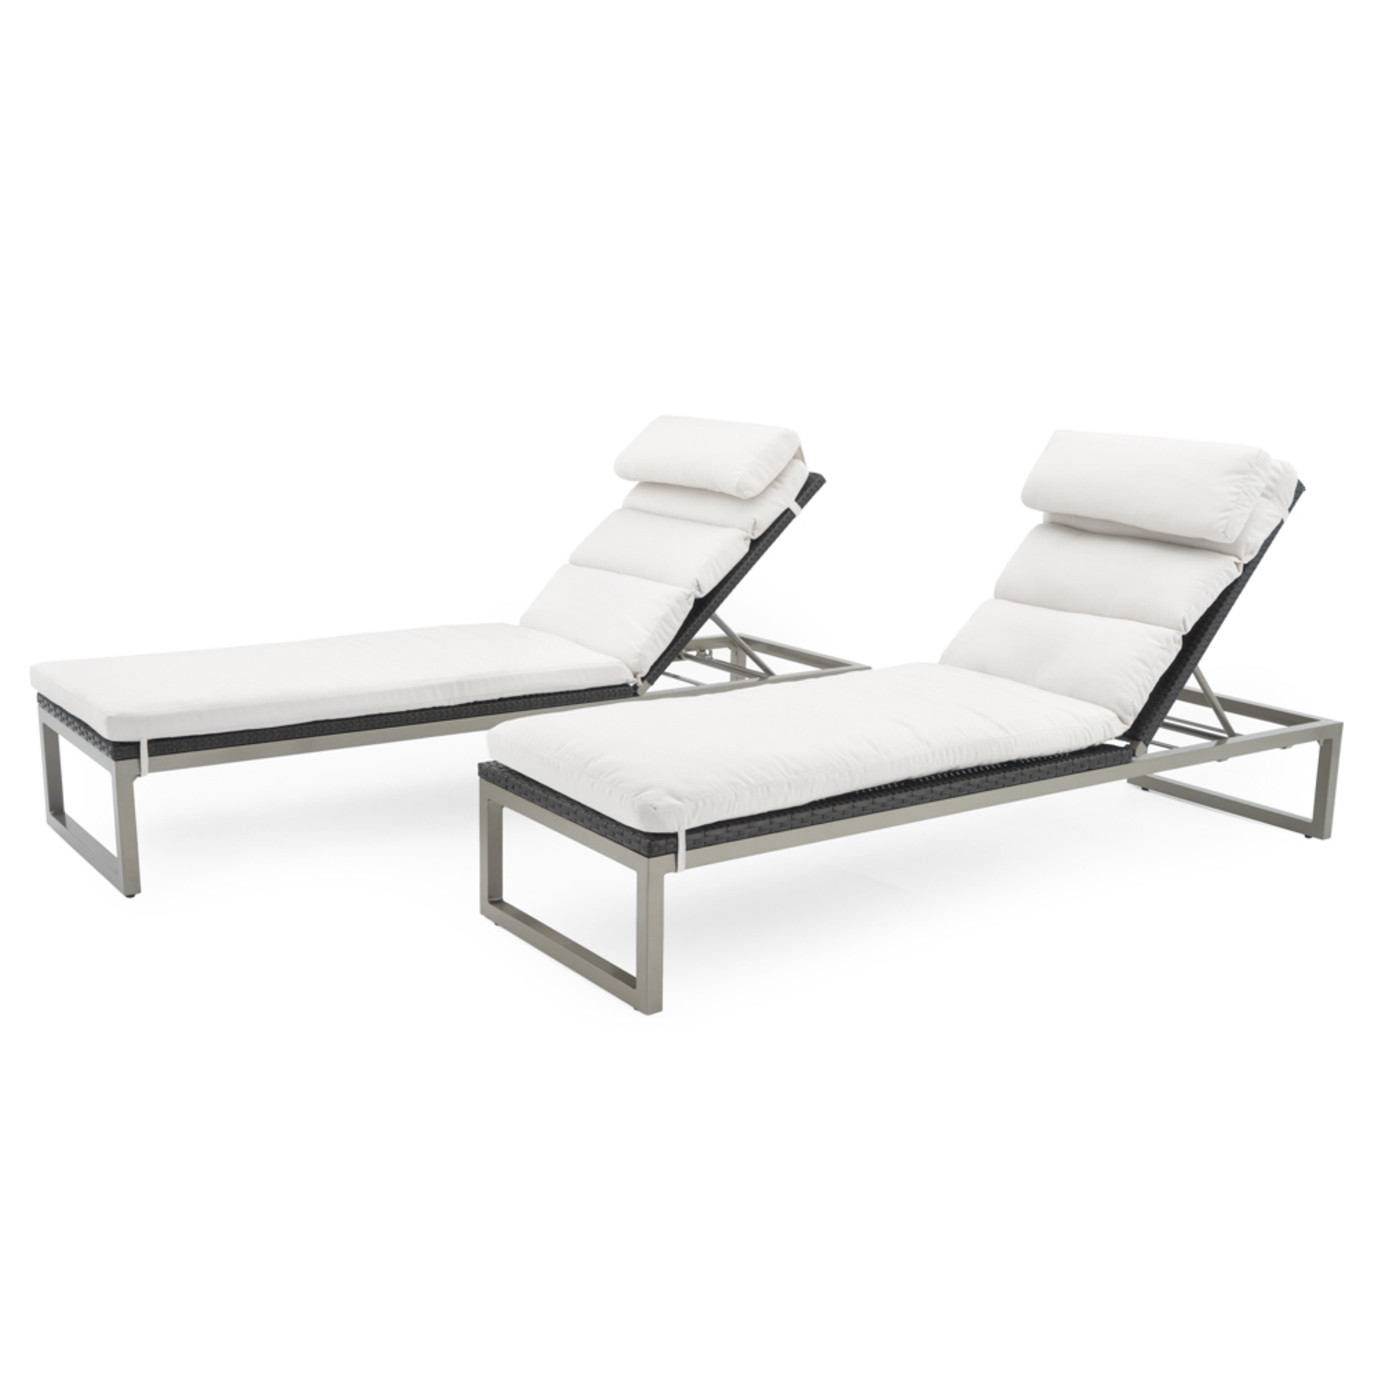 Milo™ Espresso Chaise Lounges - Moroccan Cream